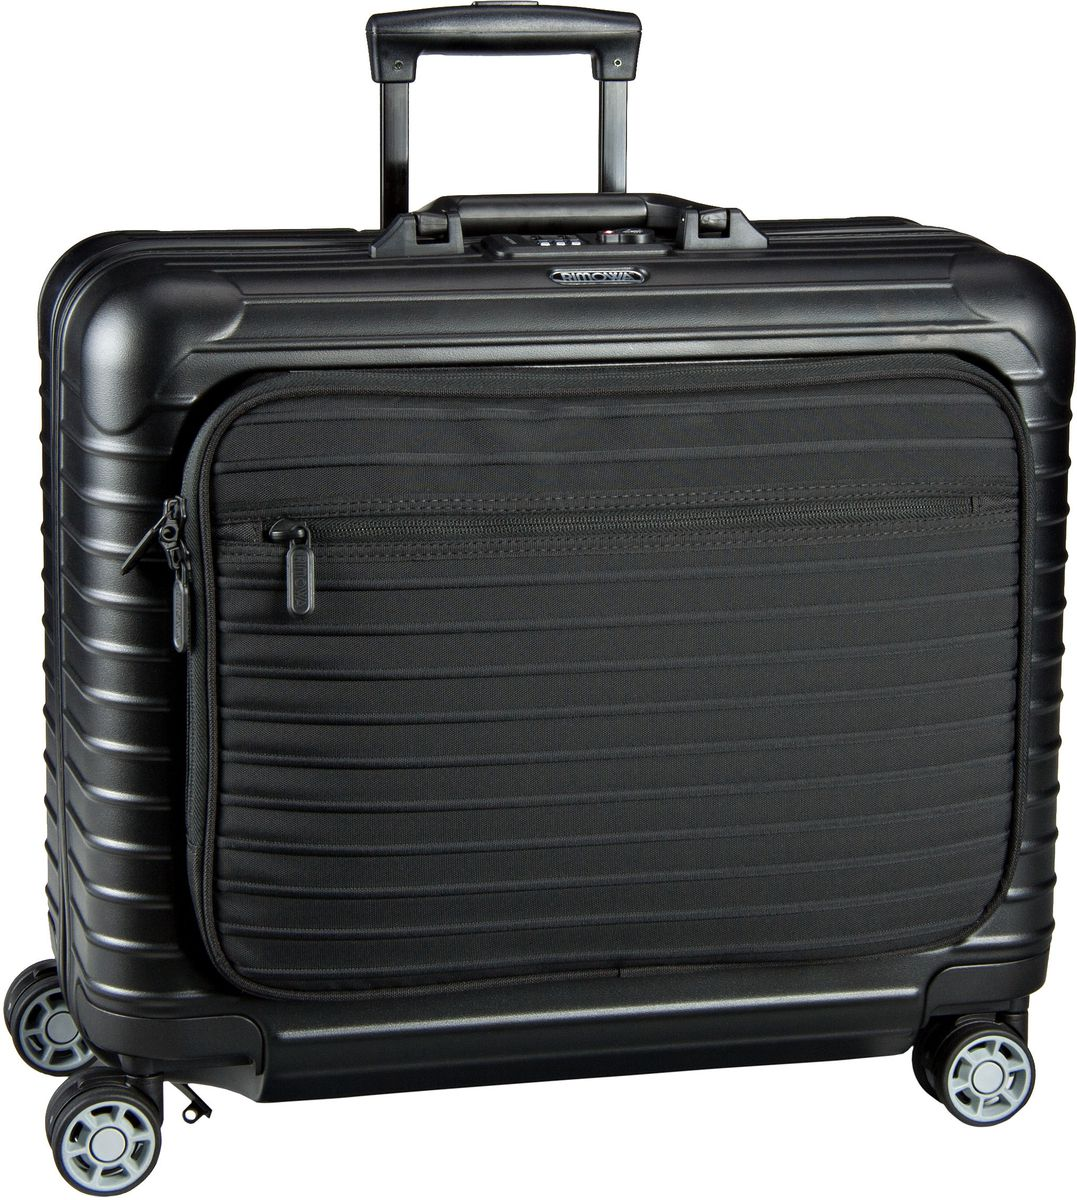 rimowa bolero business multiwheel 30 l preisvergleich. Black Bedroom Furniture Sets. Home Design Ideas